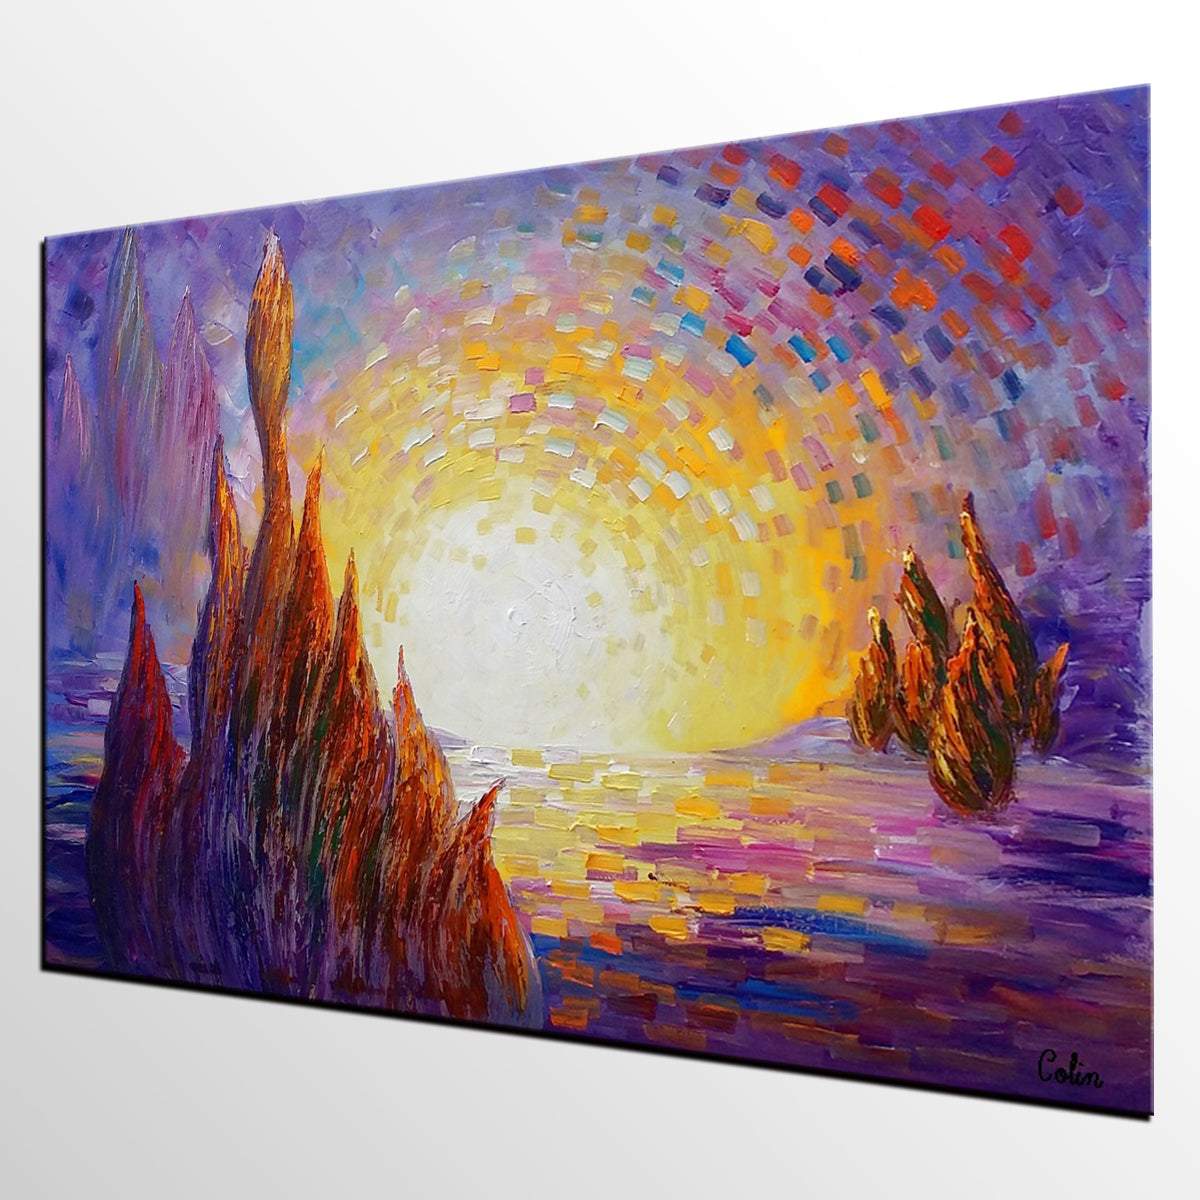 Cypress Tree Painting, Landscape Painting, Oil Painting,  Canvas Painting